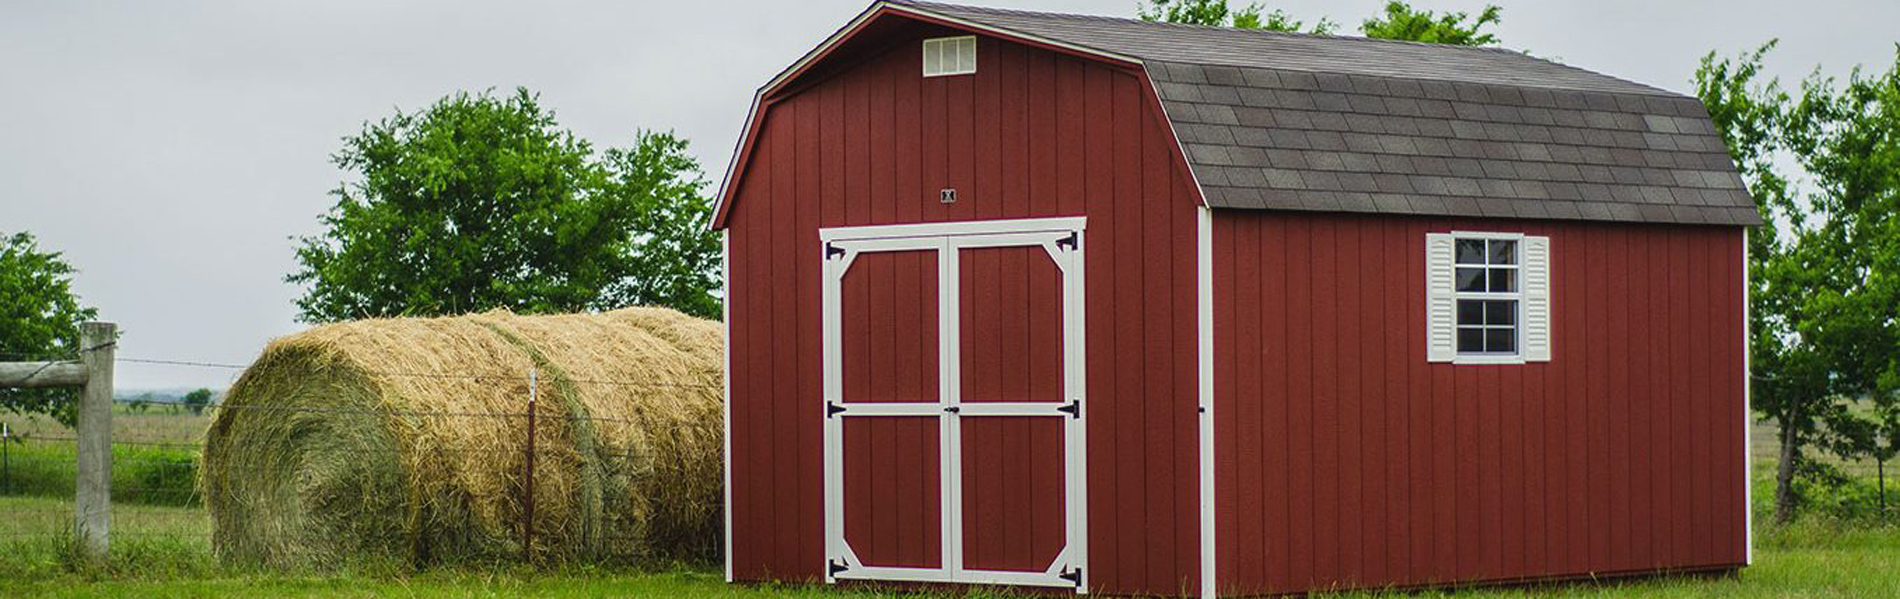 Check out our Buildings & Storage Buildings of Georgia | Portable Buildings Storage Sheds ...